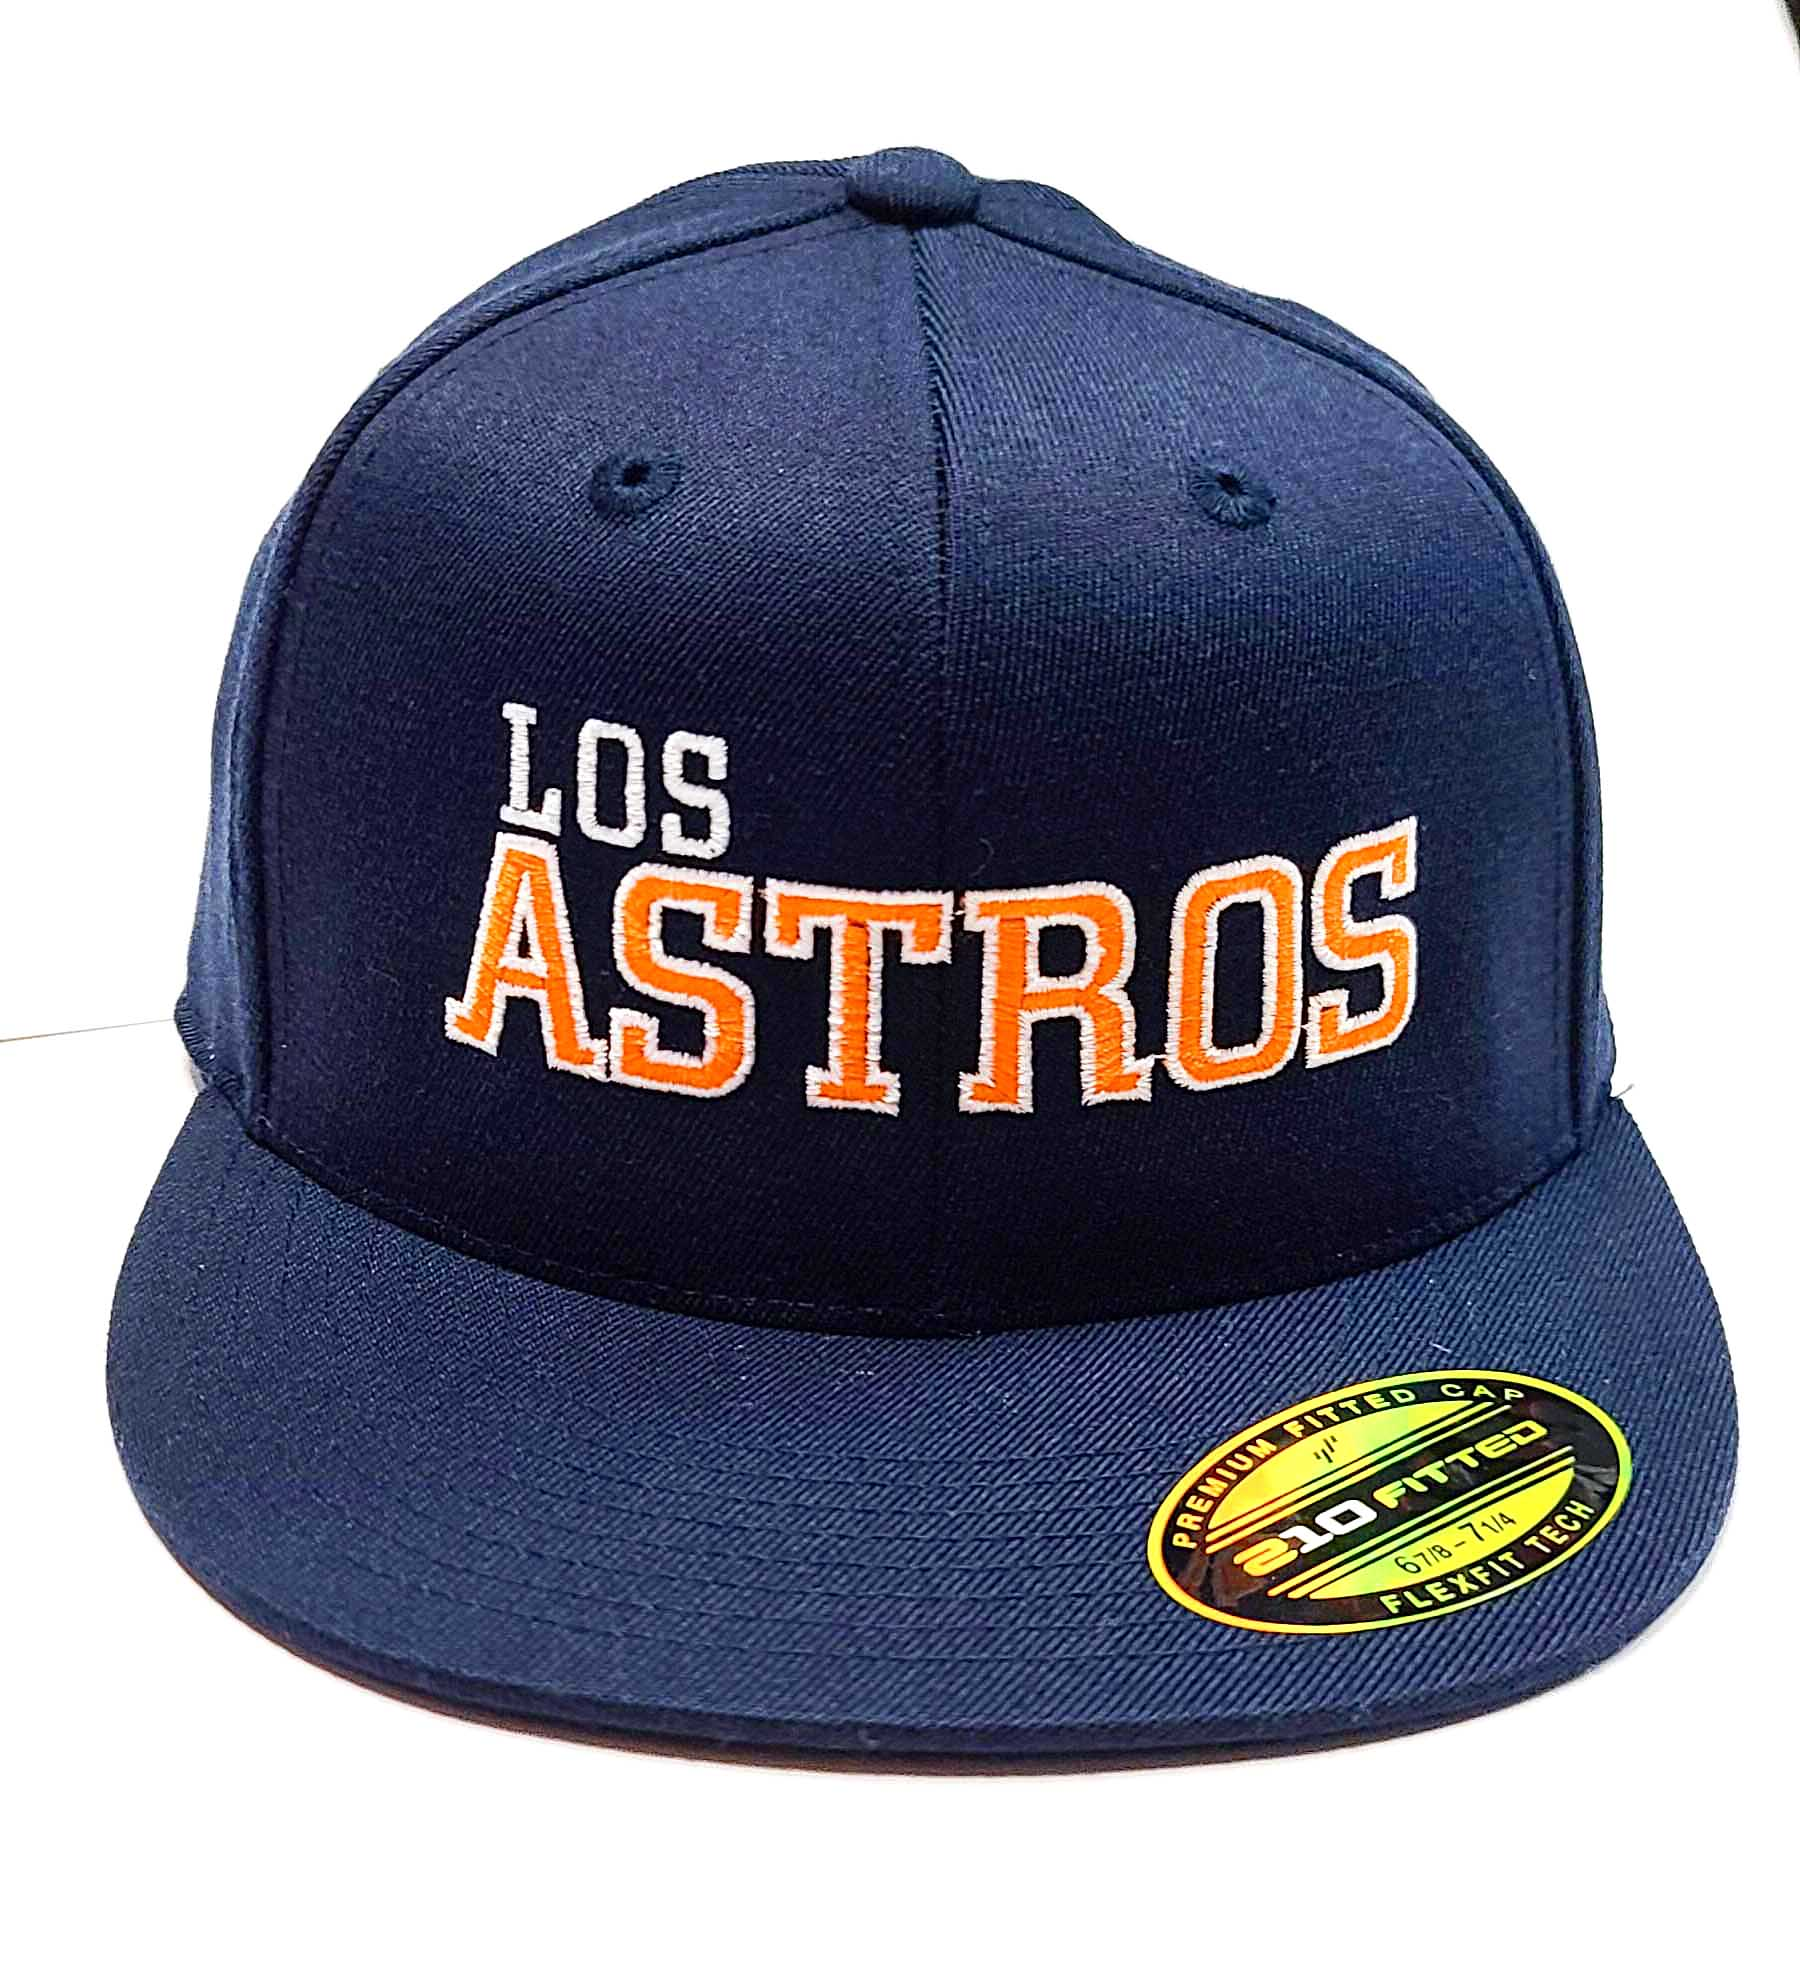 Los Astros navy Blue Flexfit 6210 cap front view